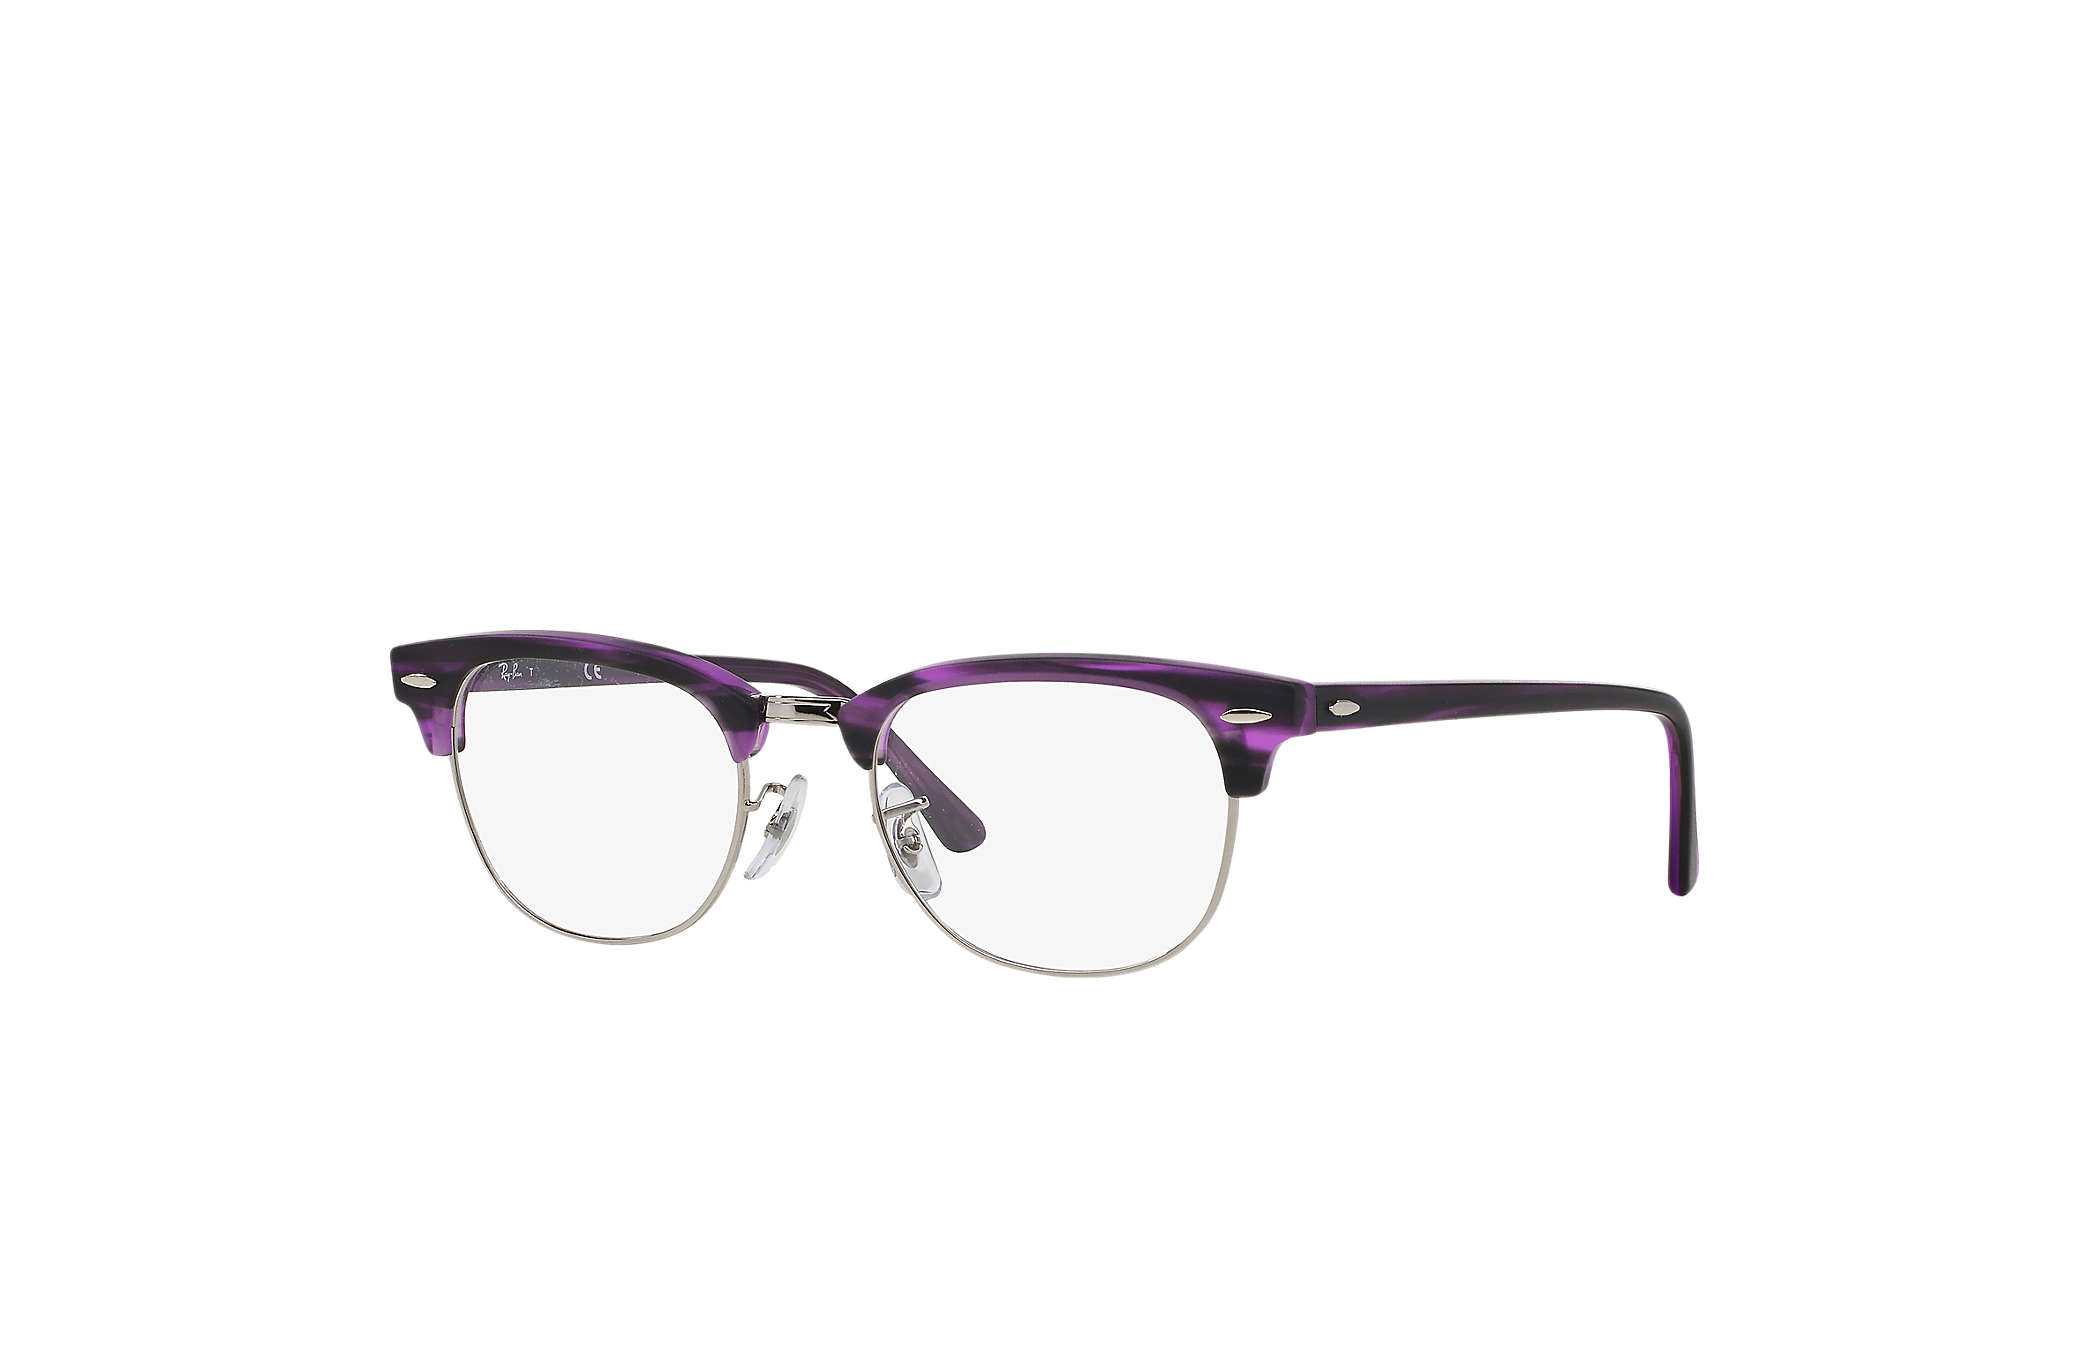 ray ban havana on violet new clubmaster sunglasses  ray ban 0rx5154 clubmaster optics violet optical